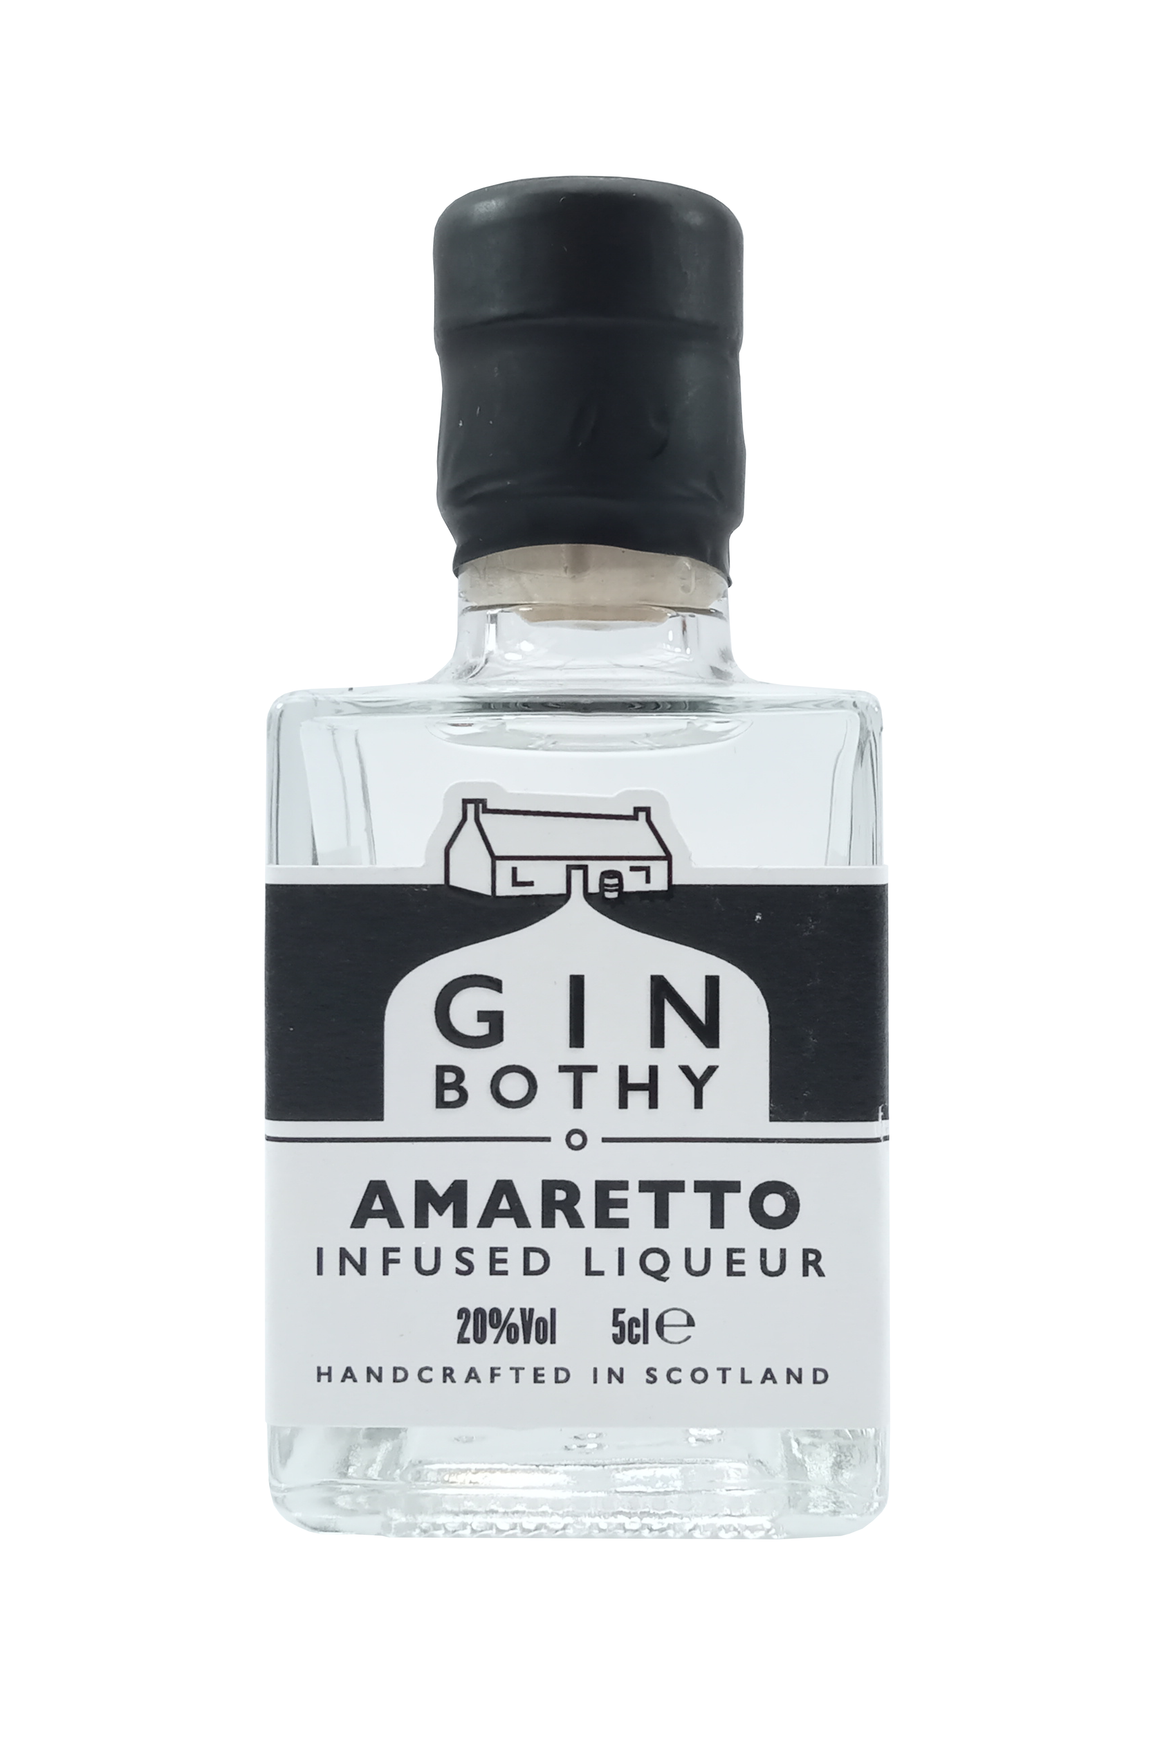 Gin Bothy Amaretto Infused Liqueur miniature gin 5cl 20% Vol.